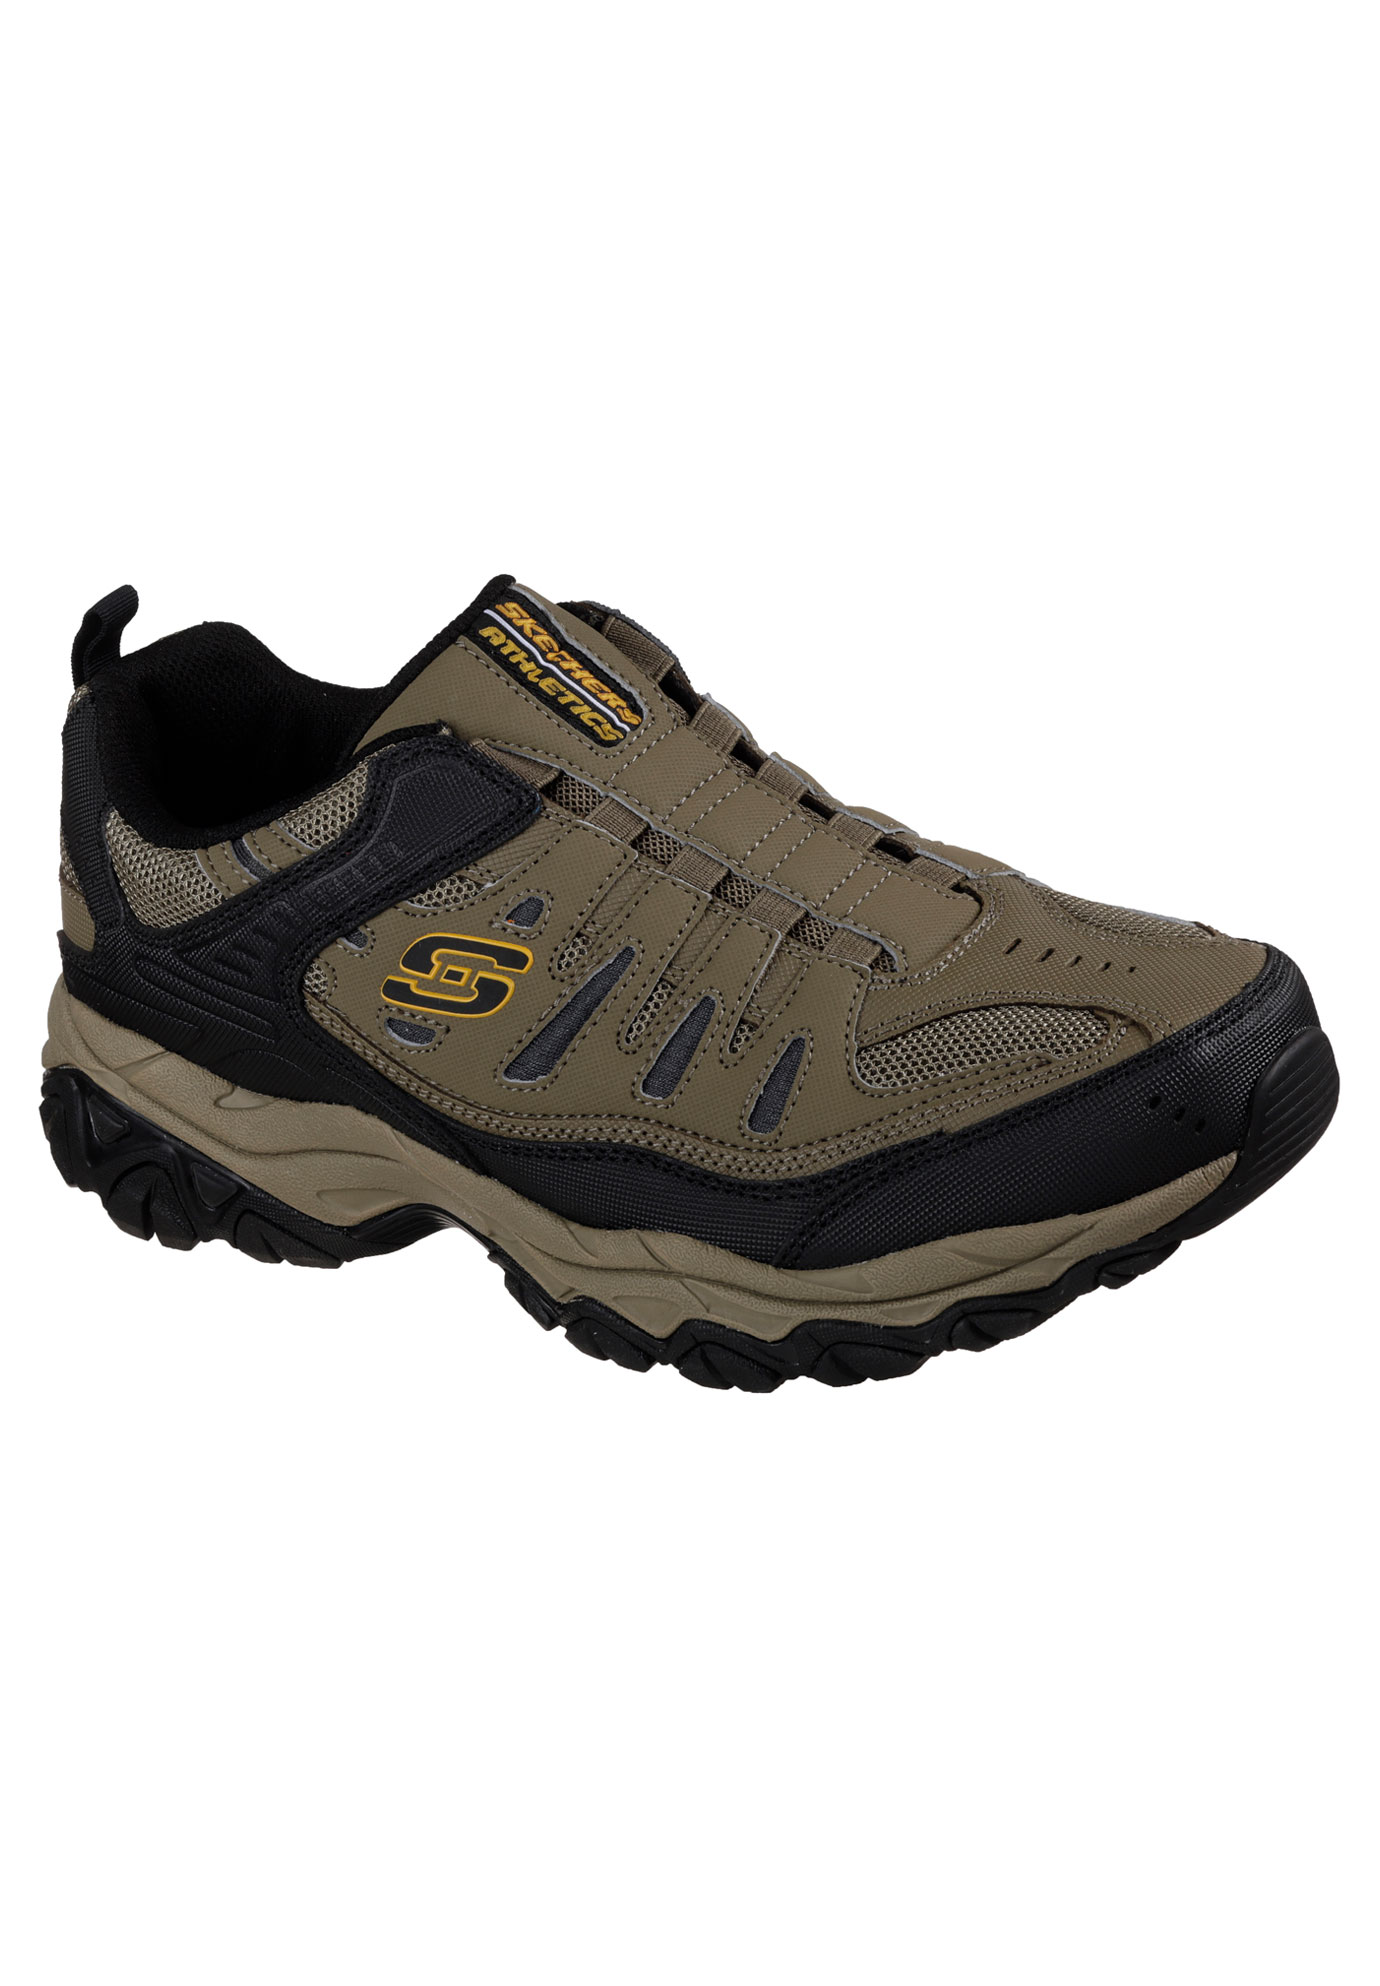 After Burn - Memory Fit Sport Shoes by SKECHERS®,